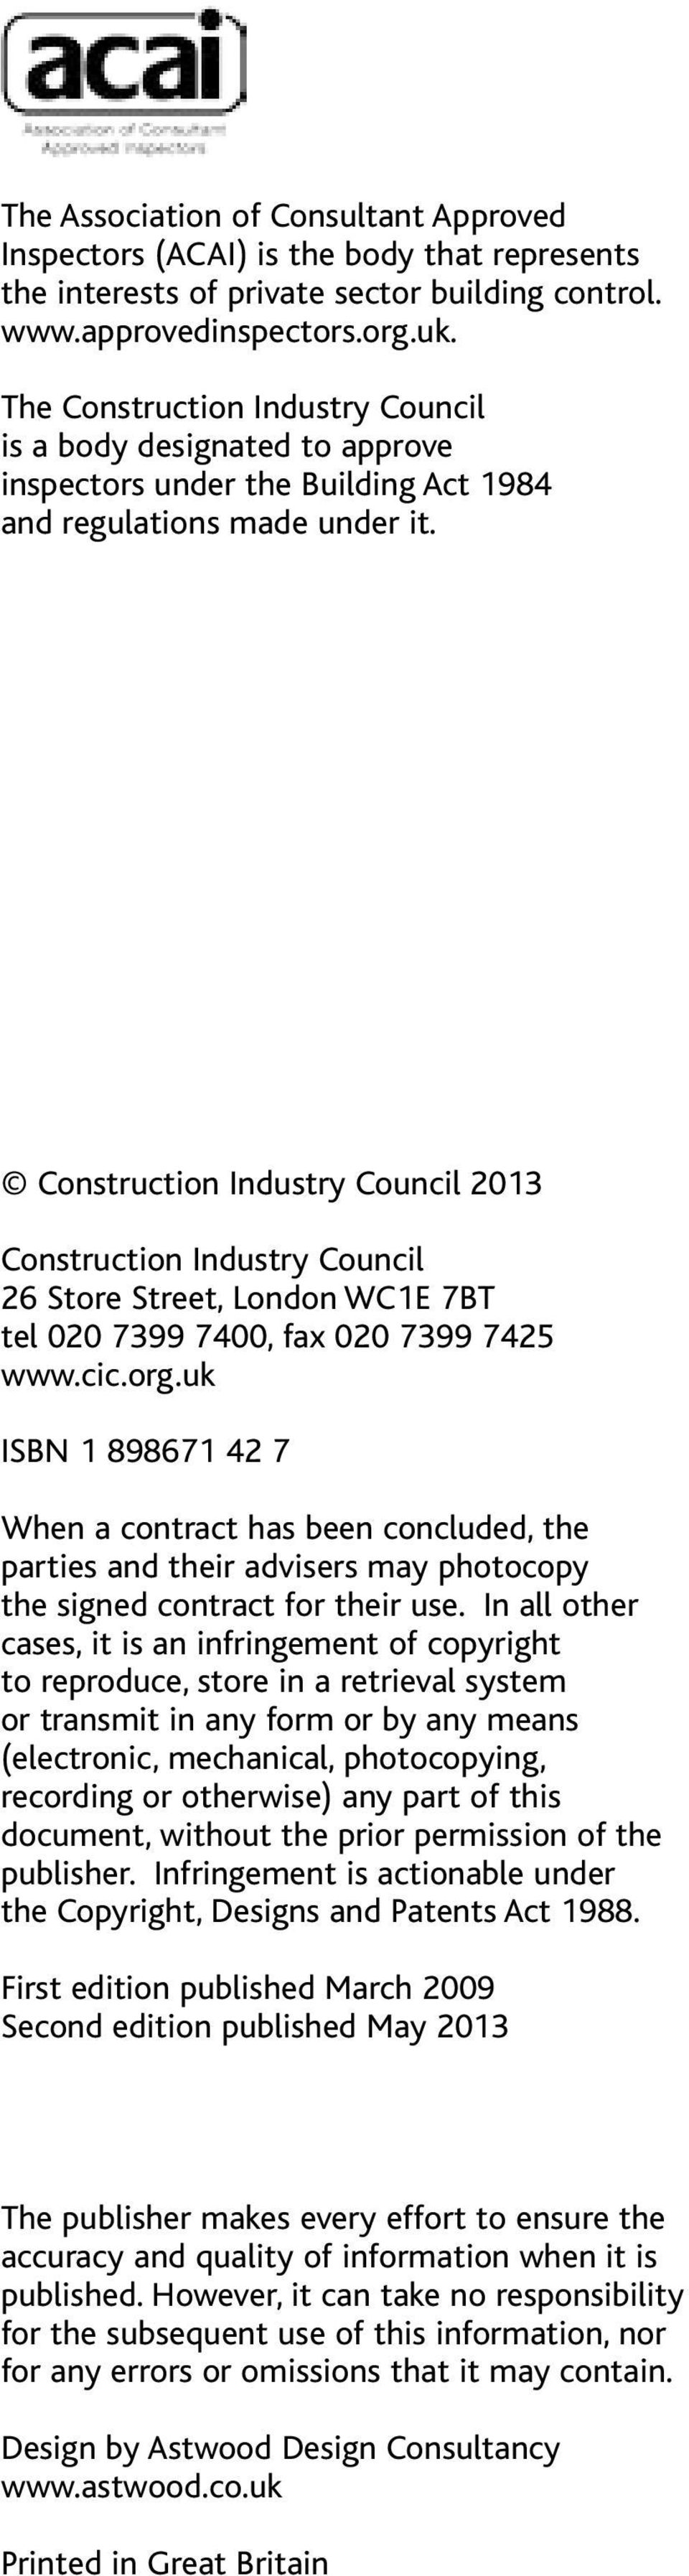 Construction Industry Council 2013 Construction Industry Council 26 Store Street, London WC1E 7BT tel 020 7399 7400, fax 020 7399 7425 www.cic.org.